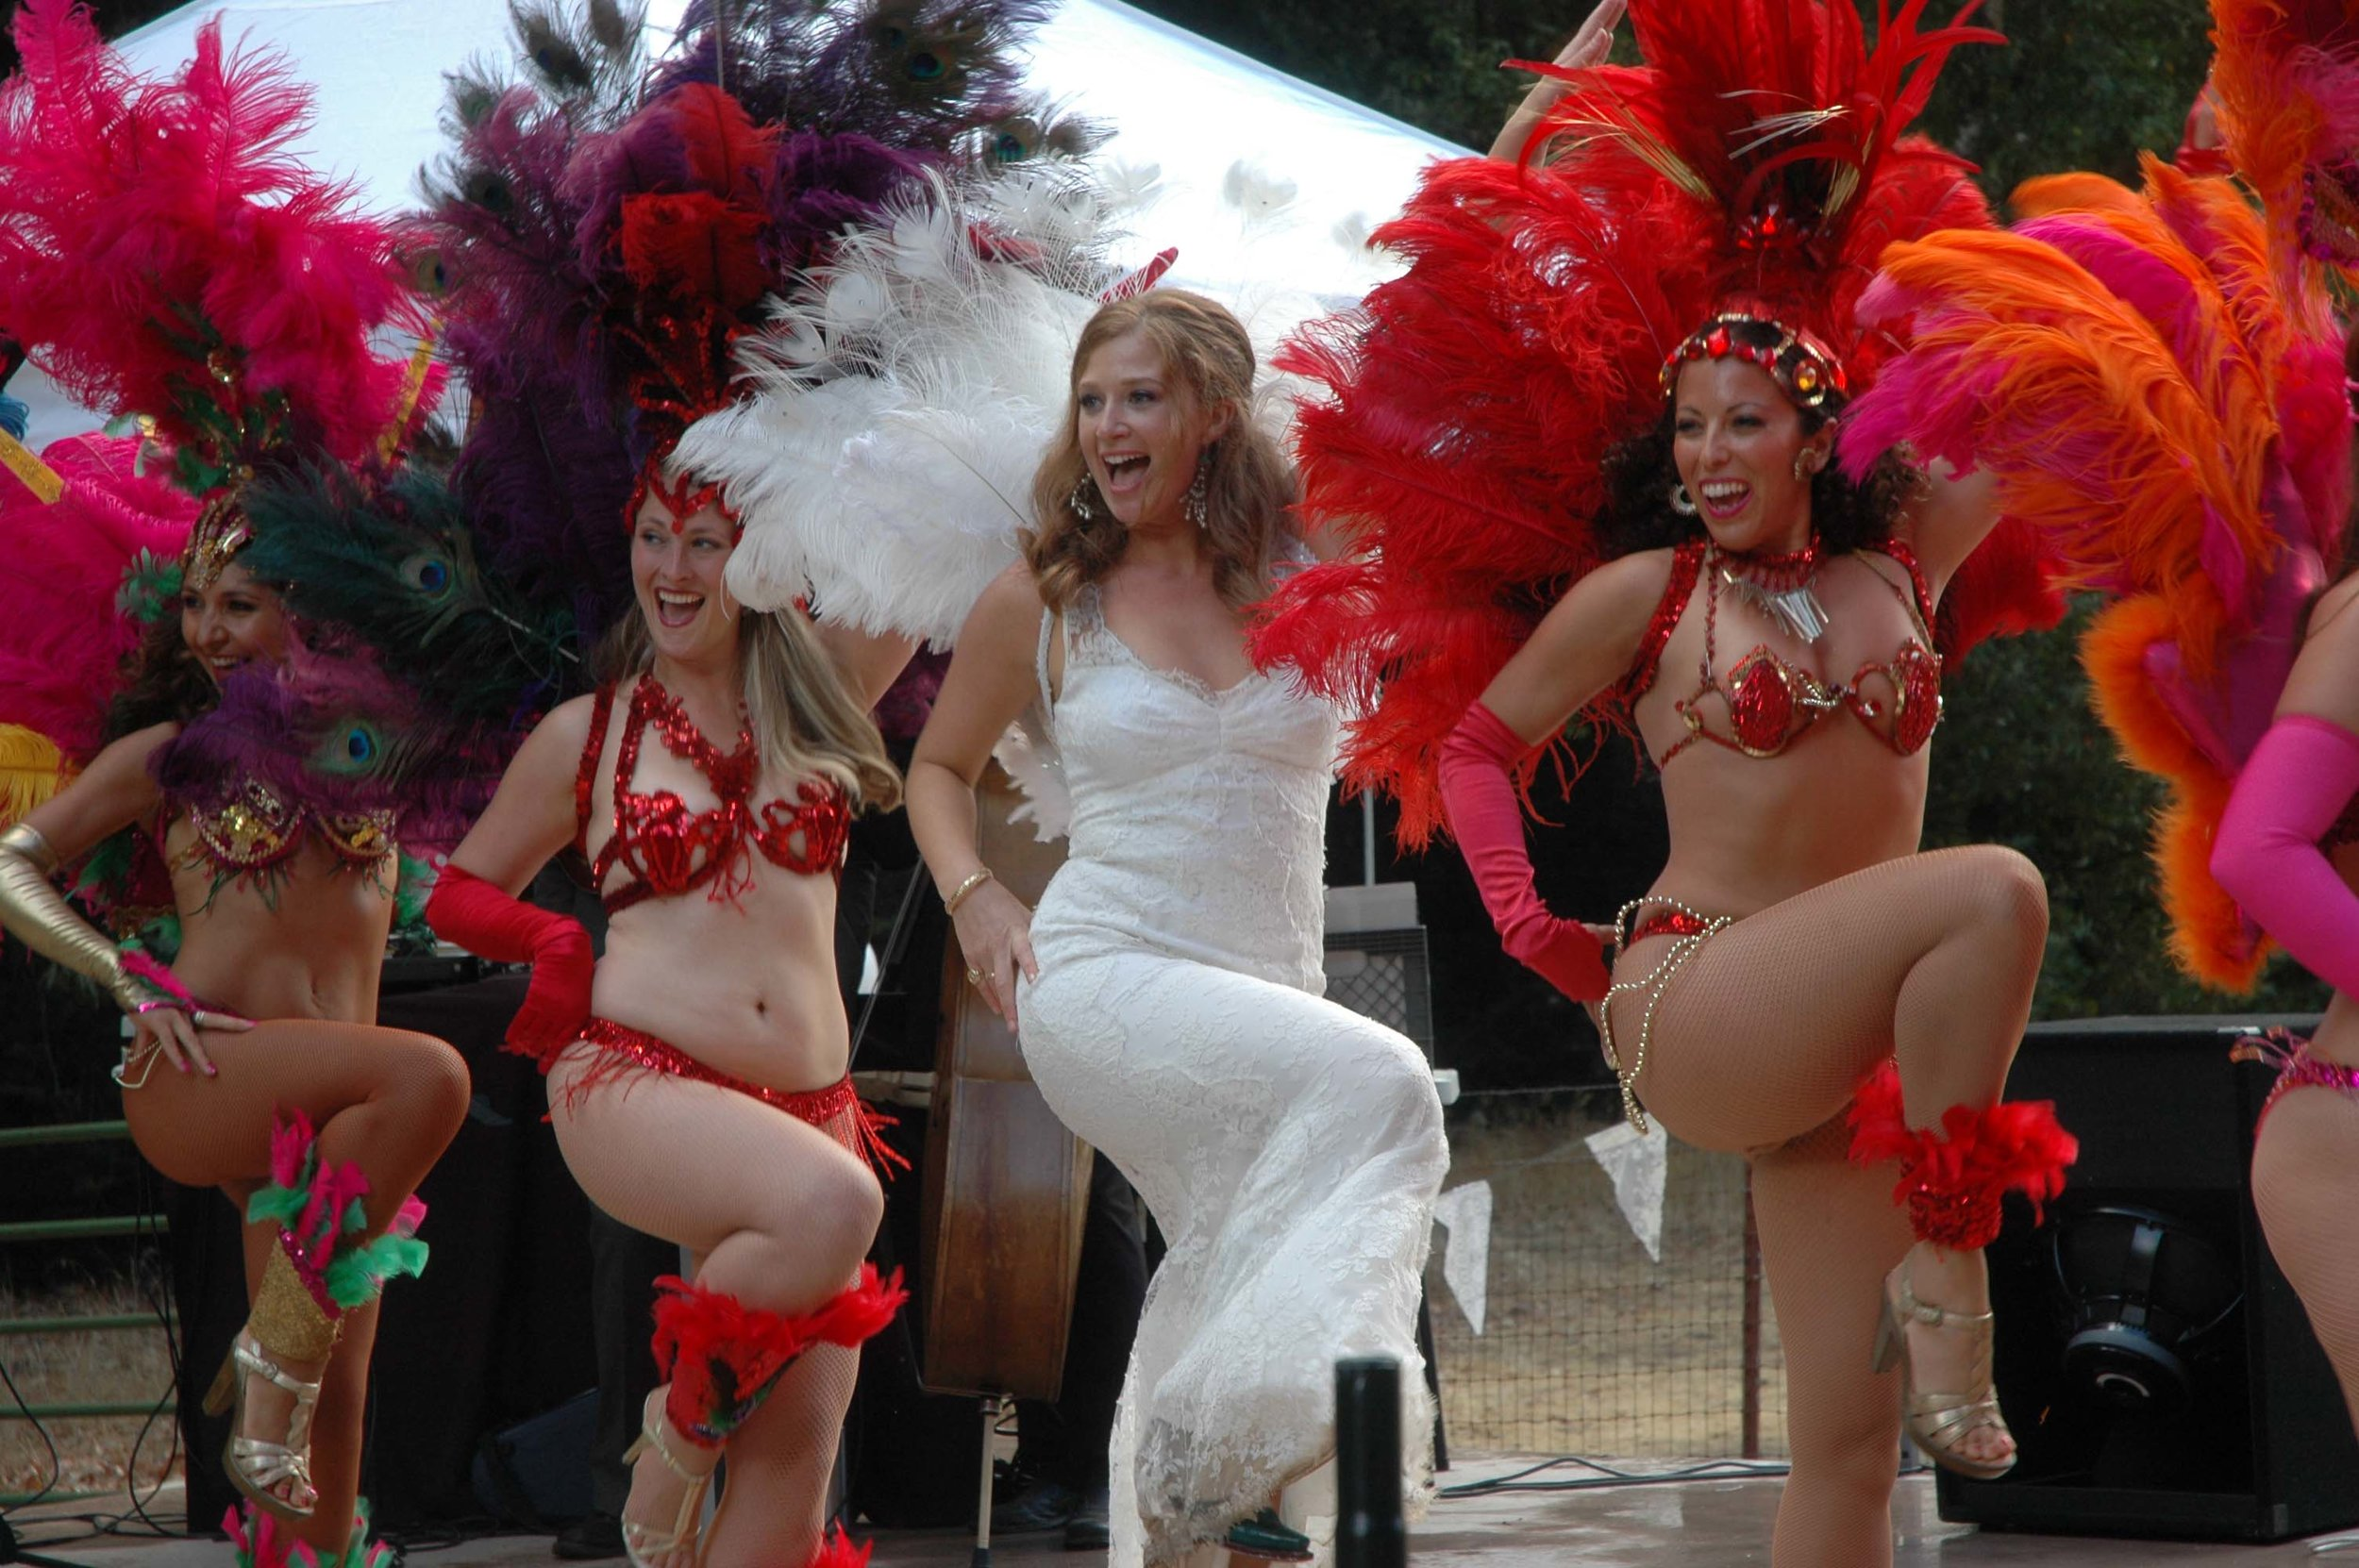 Red with Dancers 5.jpg